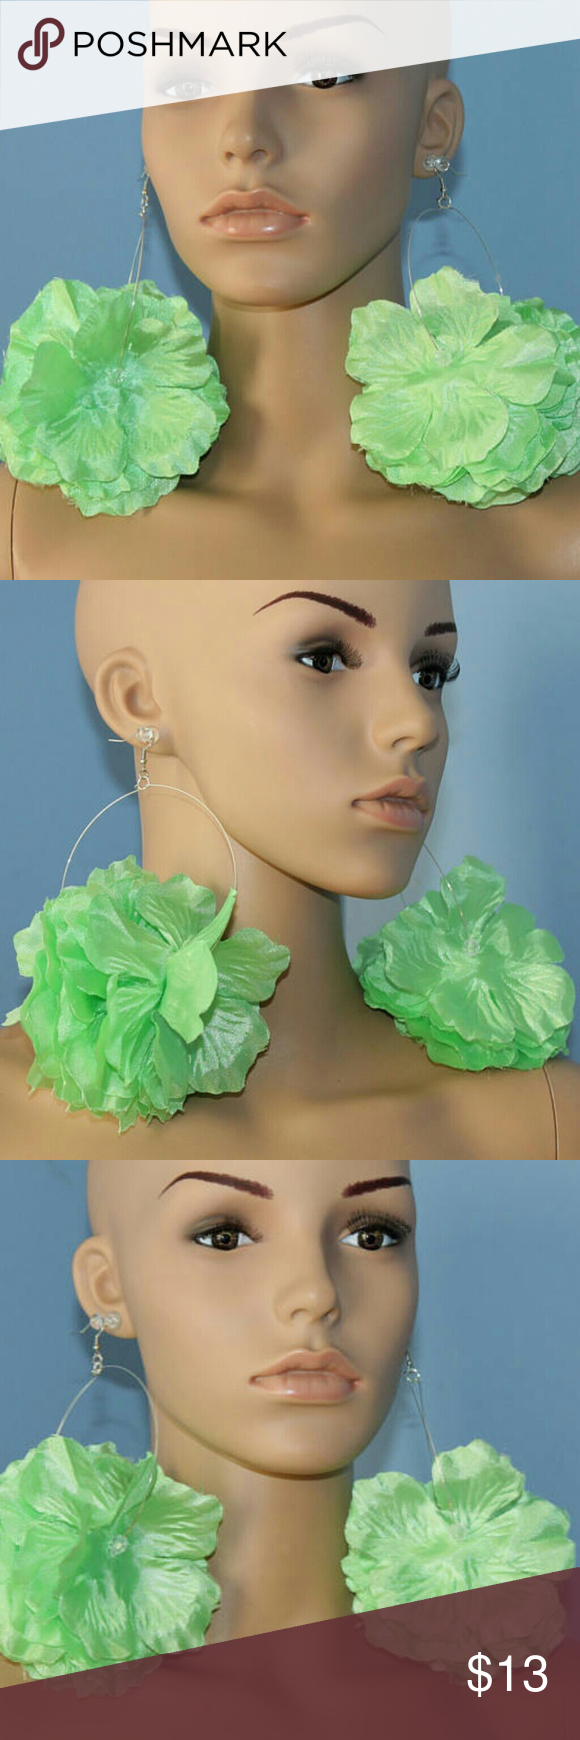 Piercing nose at home  Lime green flower hoop earrings pierced or clip NWT  Green flowers